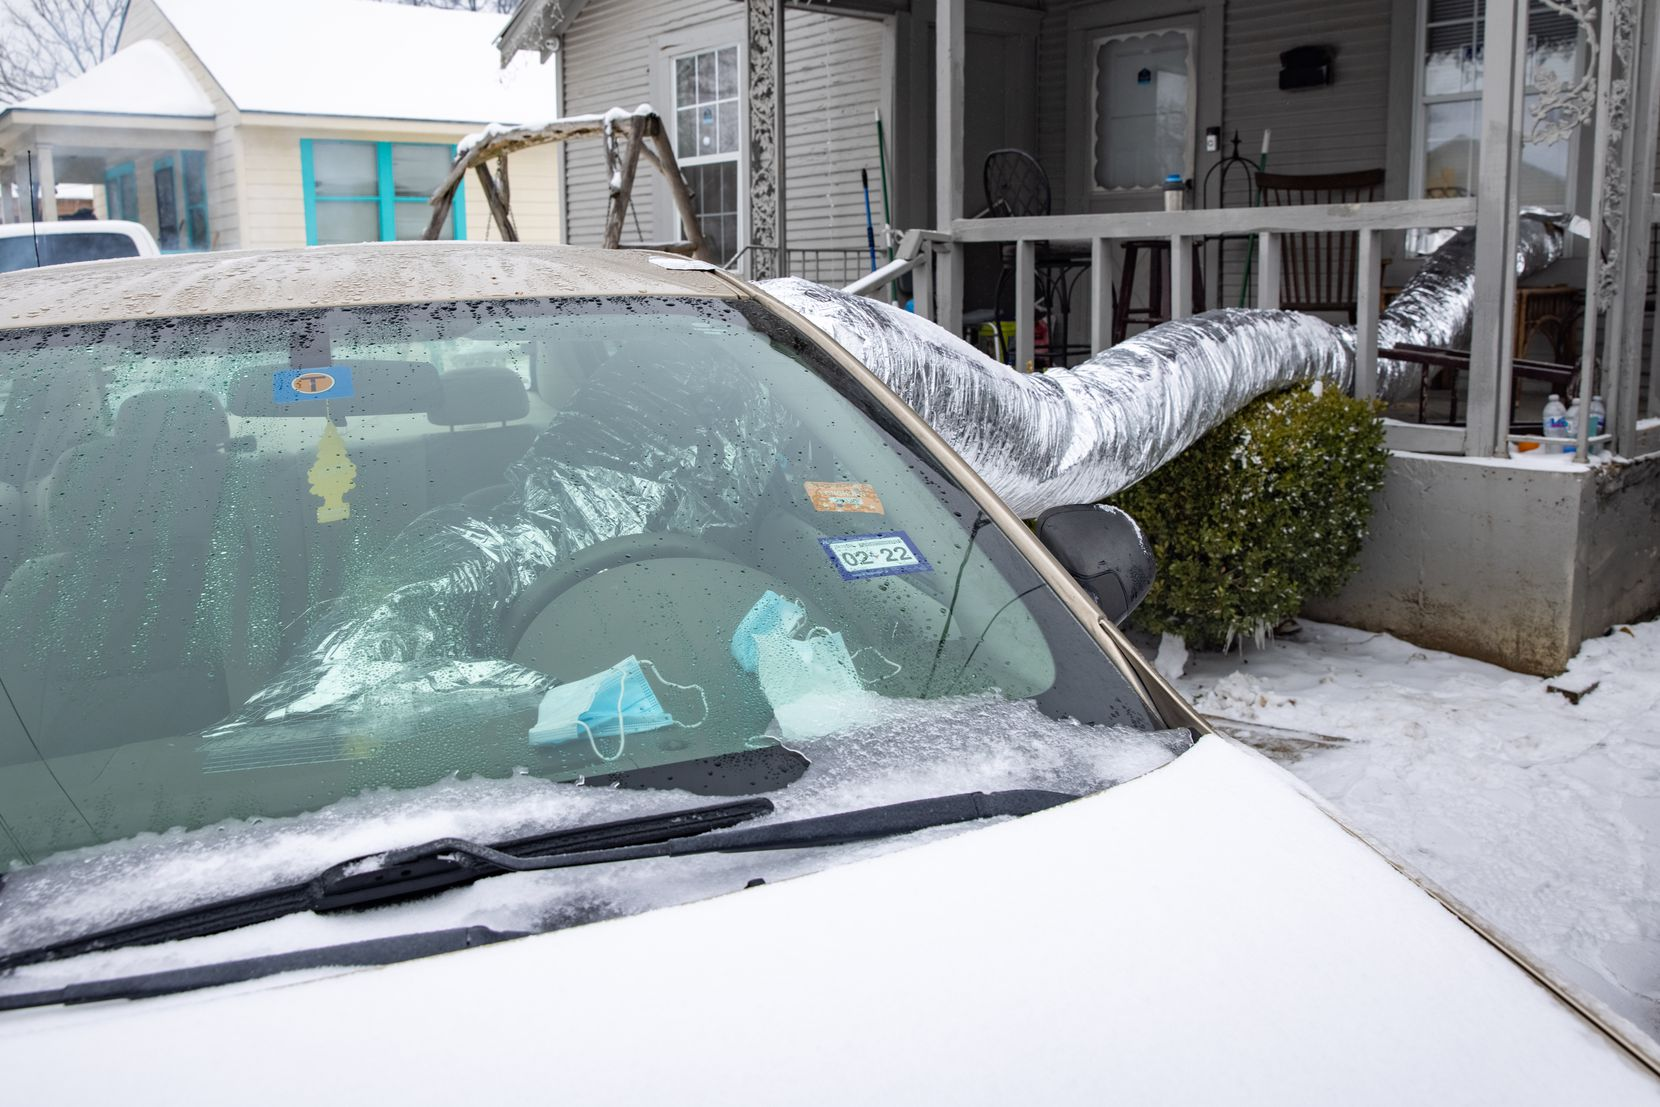 Leonel Solis and Estefani Garcia devised a way last week to move heat from their car's heating system into their East Dallas home to stay warm.